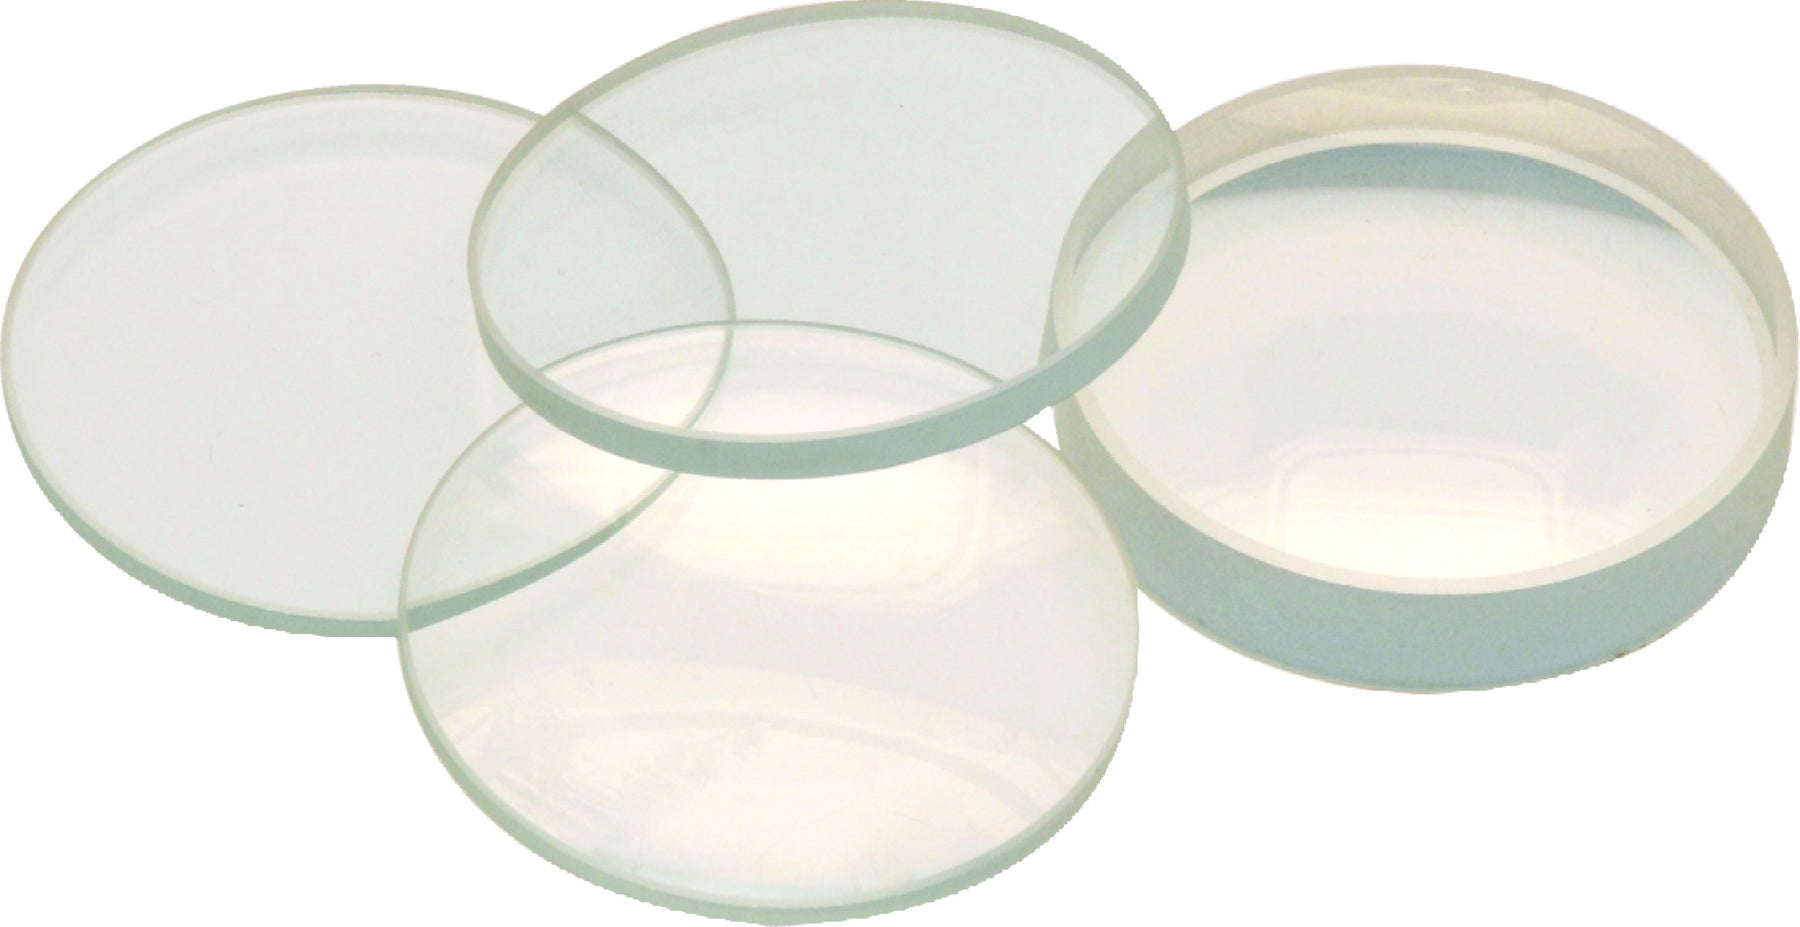 Glass Lenses - Double Convex & Concave, Dia - 40 mm, F.L. - 300 mm